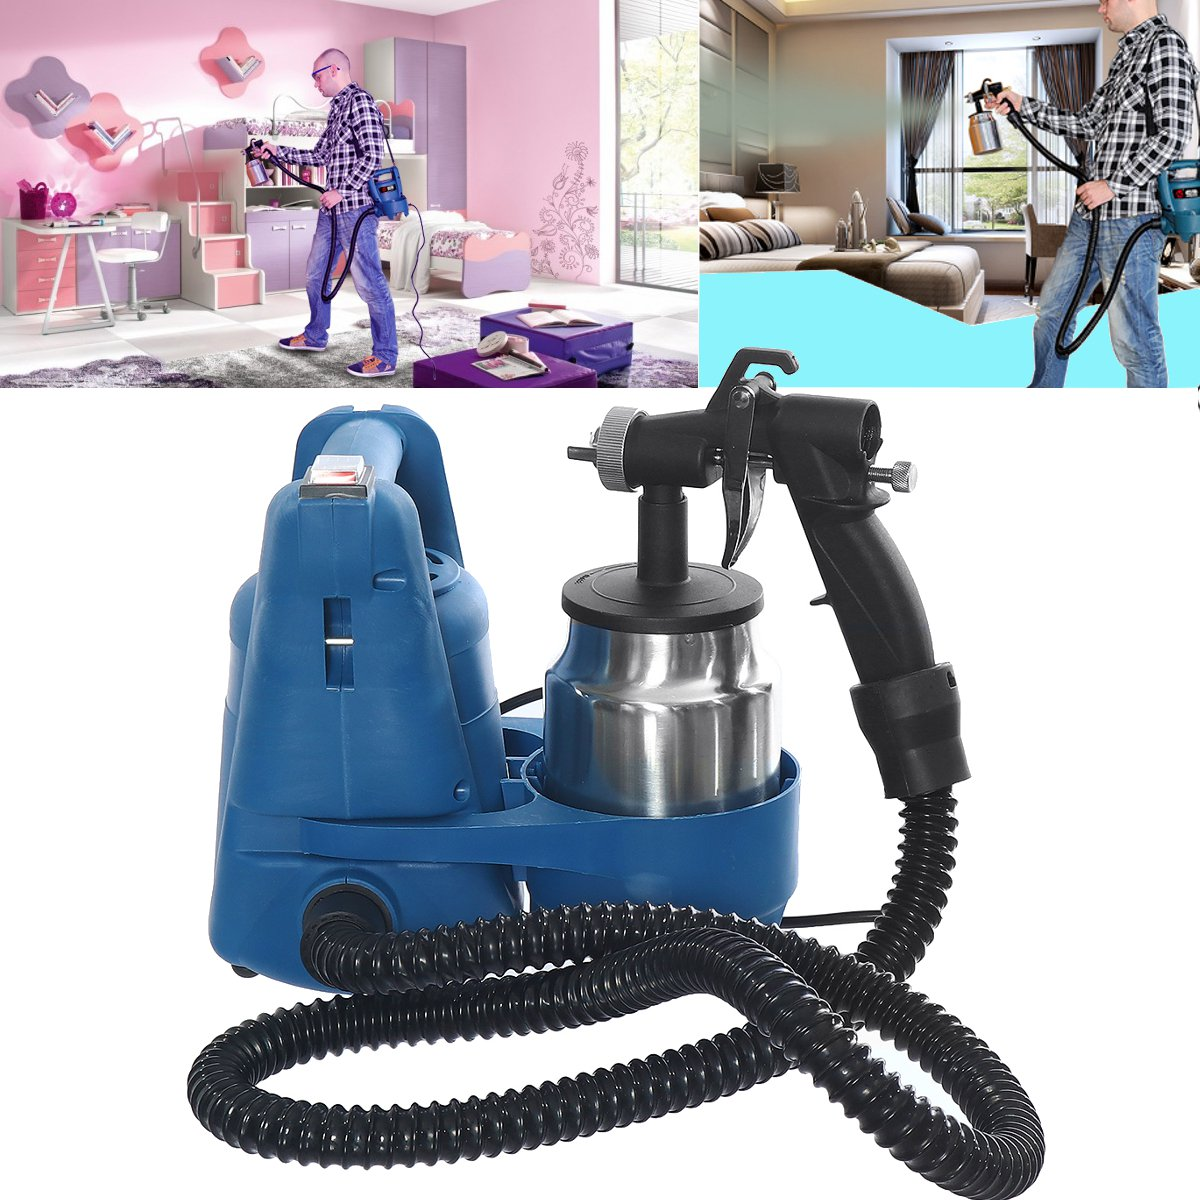 650W Electric Paint Sprayer System Zoom High Pressure G un Spray Wall Painting Decorations